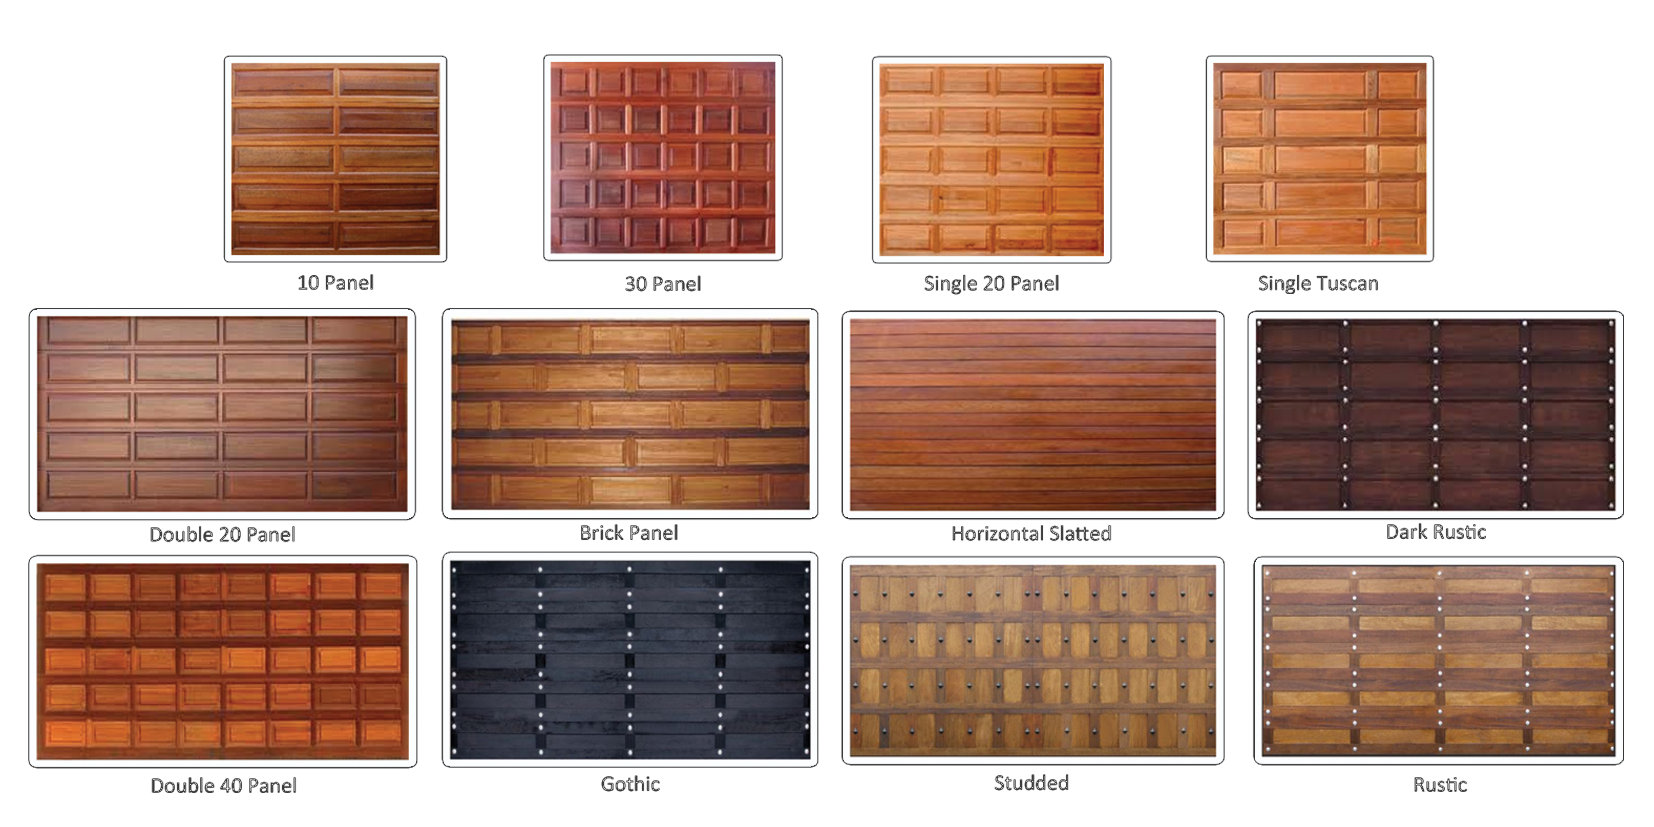 827 #A44A27 Garage Door 20 Panel Wooden Garage Door 30 Panel Wooden Garage Door  pic Horizontal Garage Doors 37811654